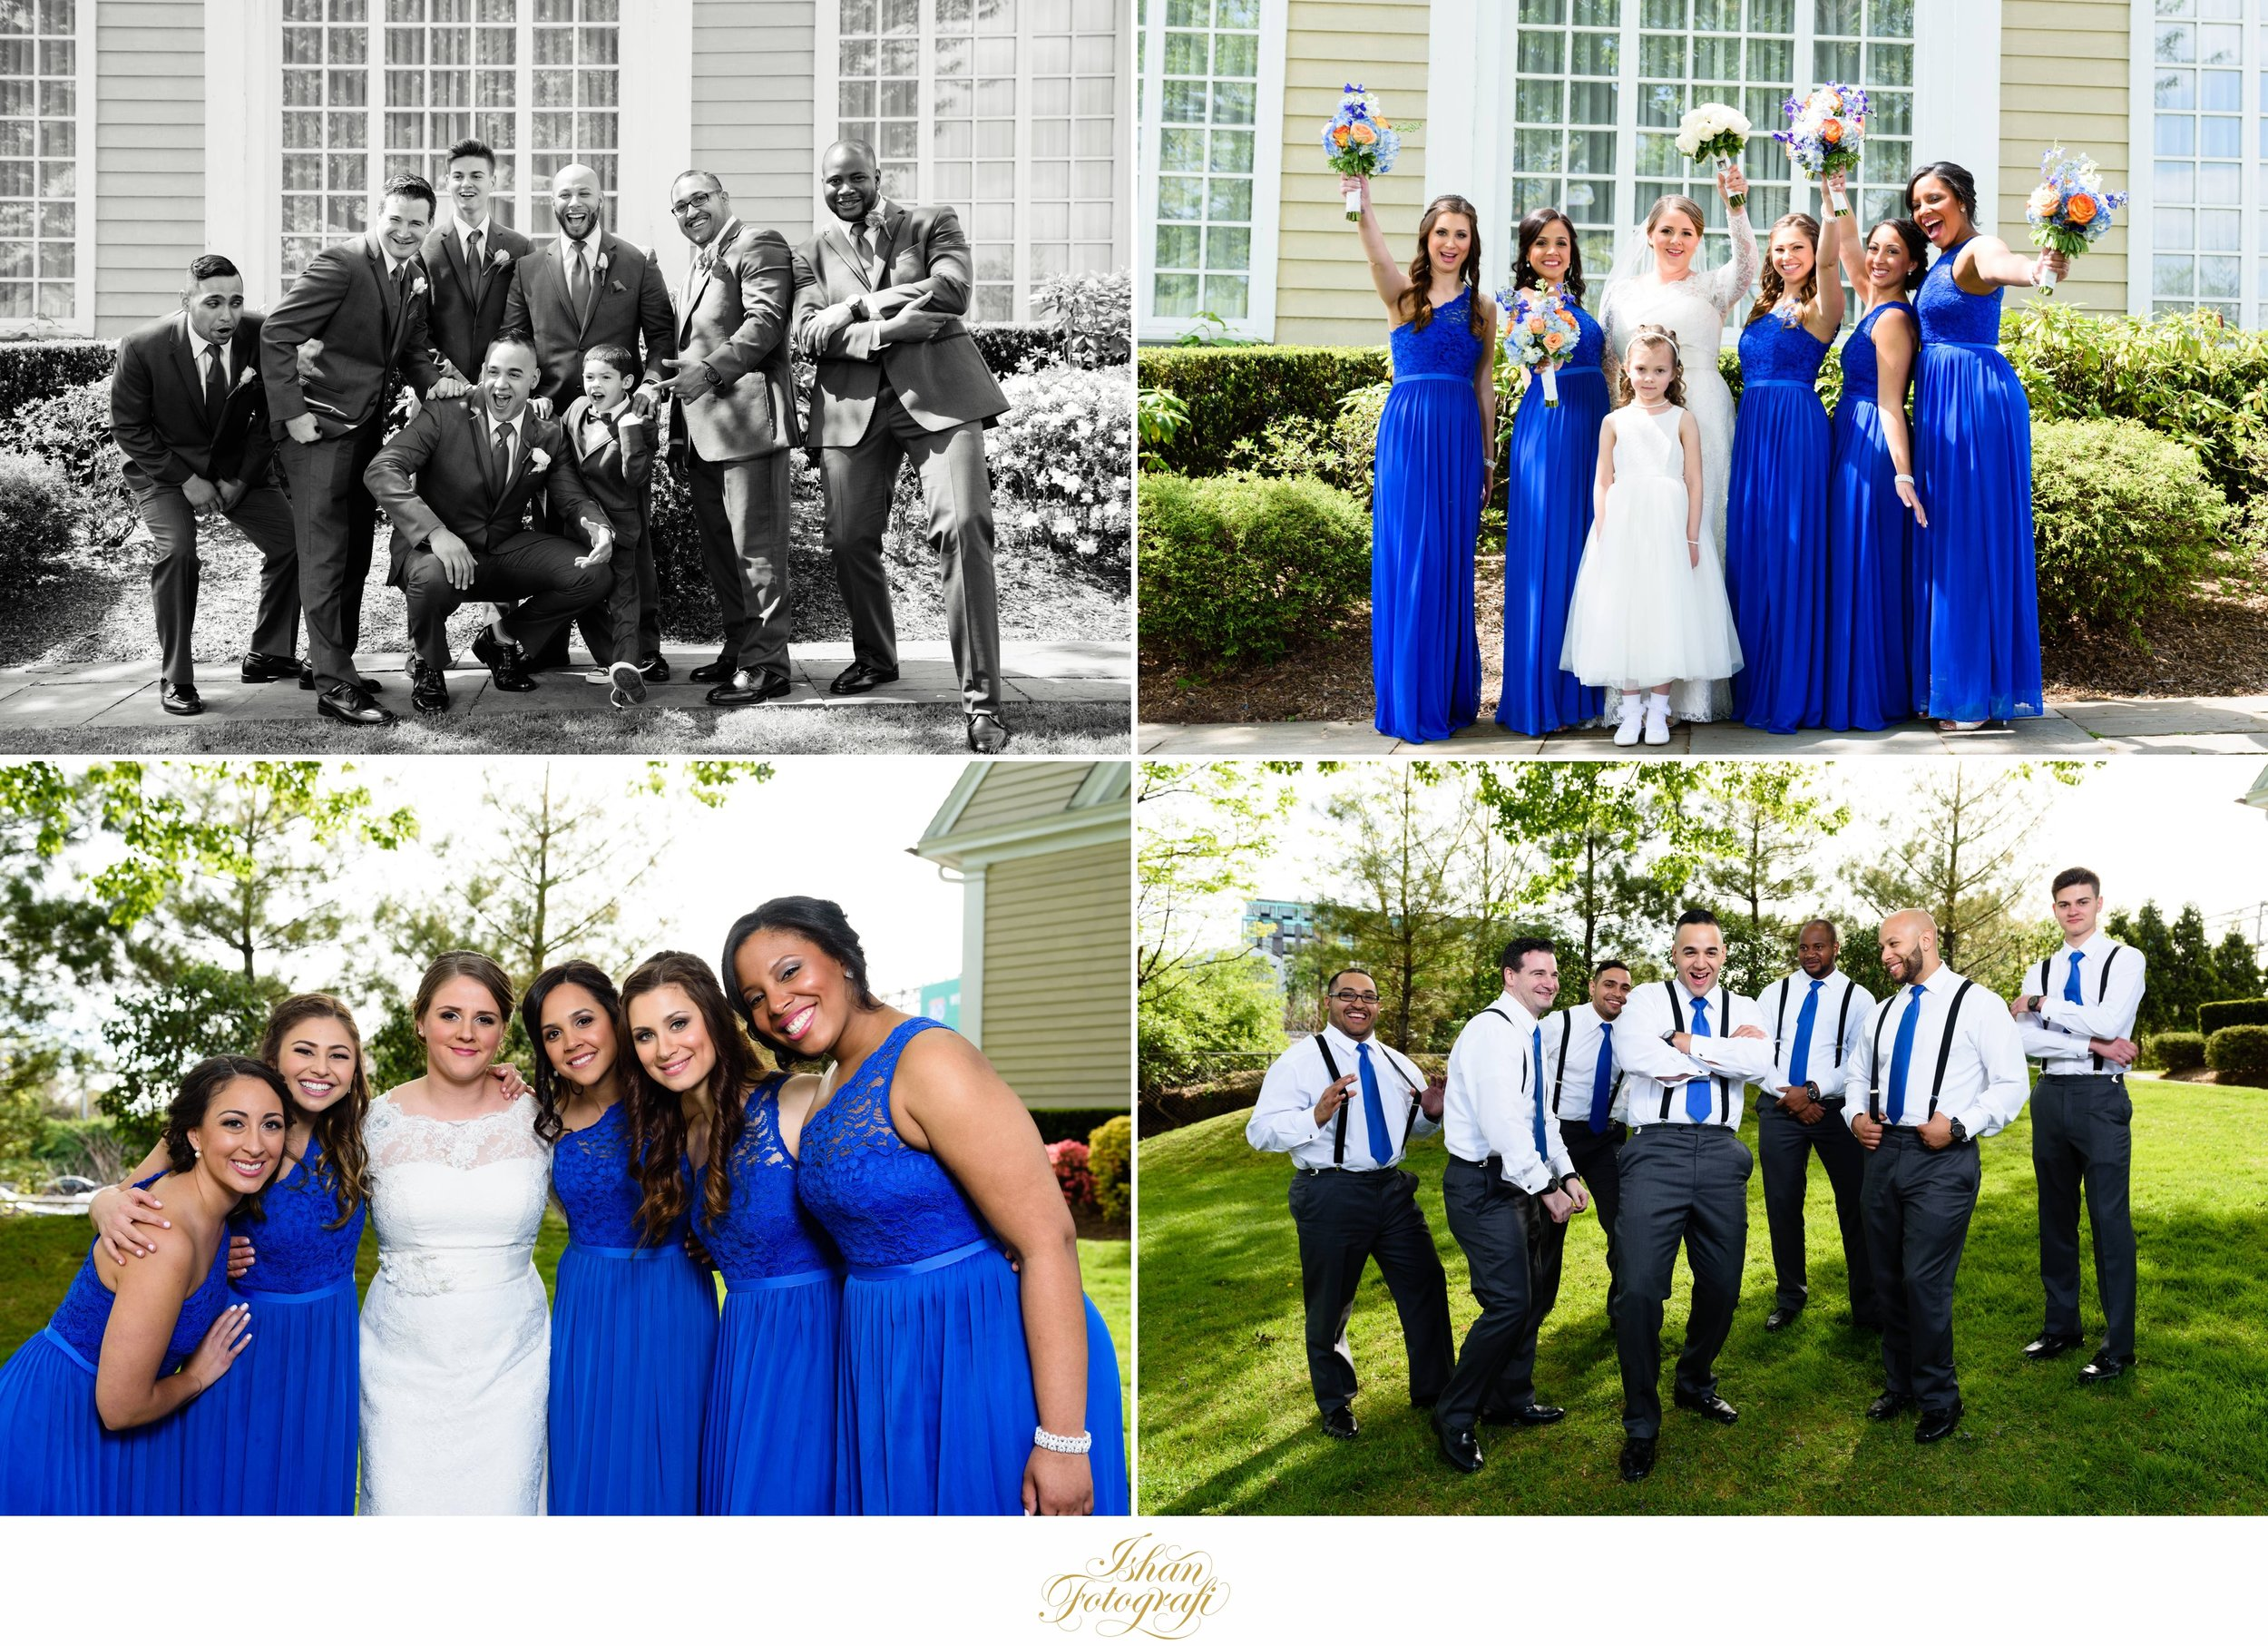 Amanda & Jeffrey had such a fun loving and amazing bridal party!Everyone was just so happy to be present celebrating our lovely couple's wedding day. This made our job as photographers so much more exciting! Such genuine moments cannot be posed.